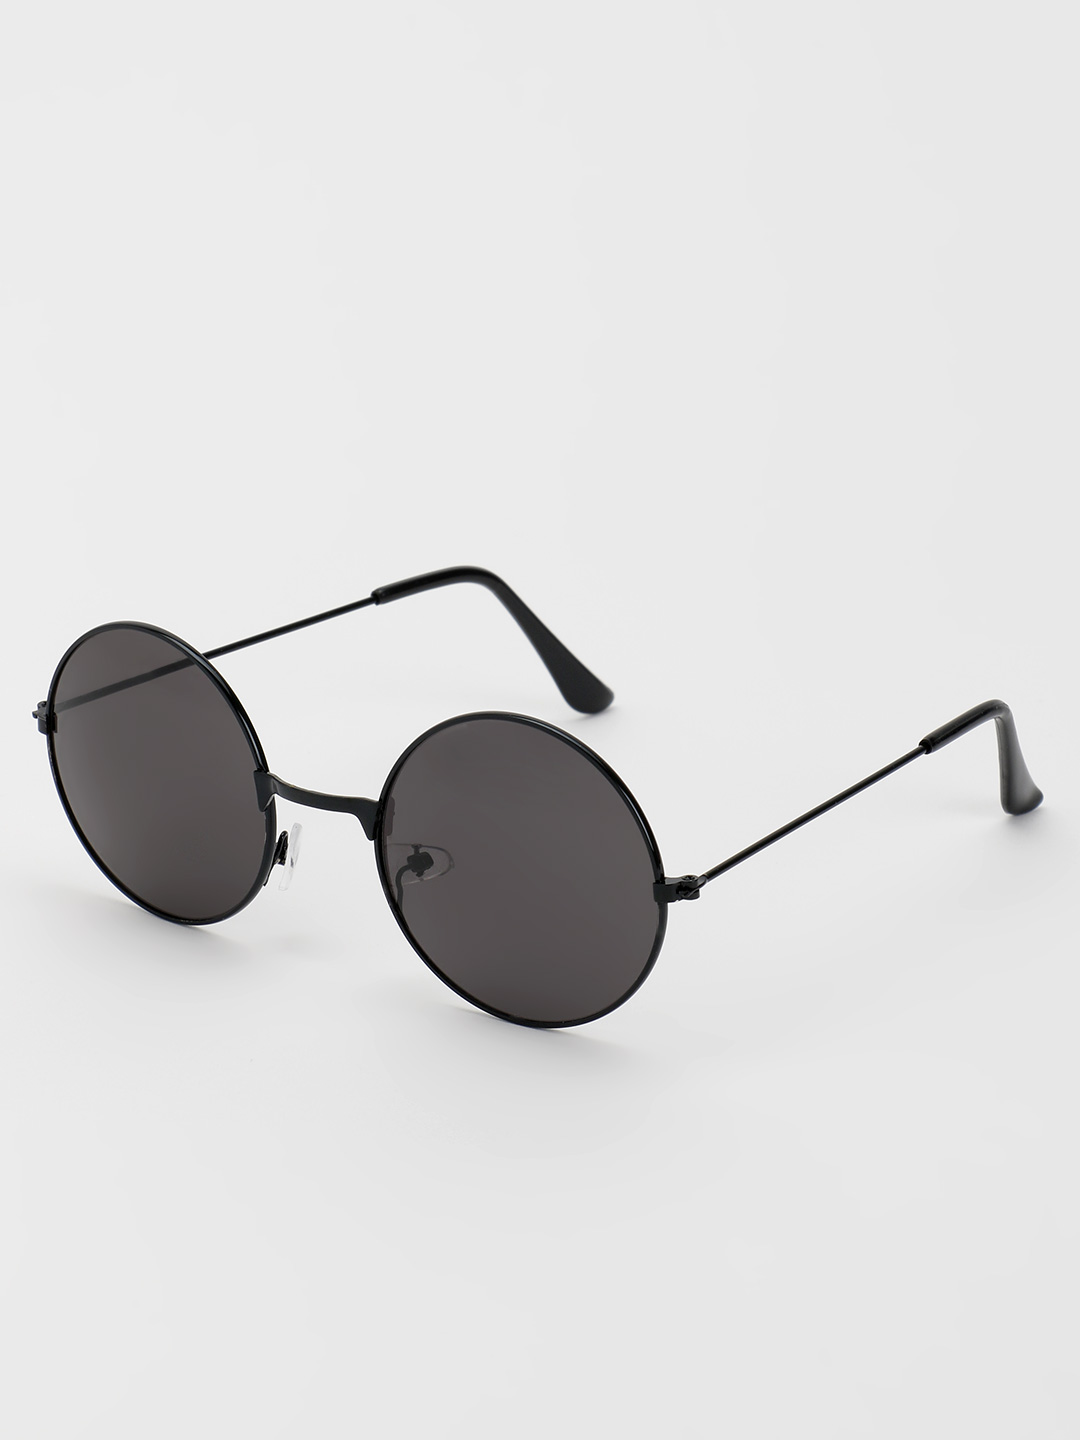 KOOVS Black Tinted Round Lens Sunglasses 1